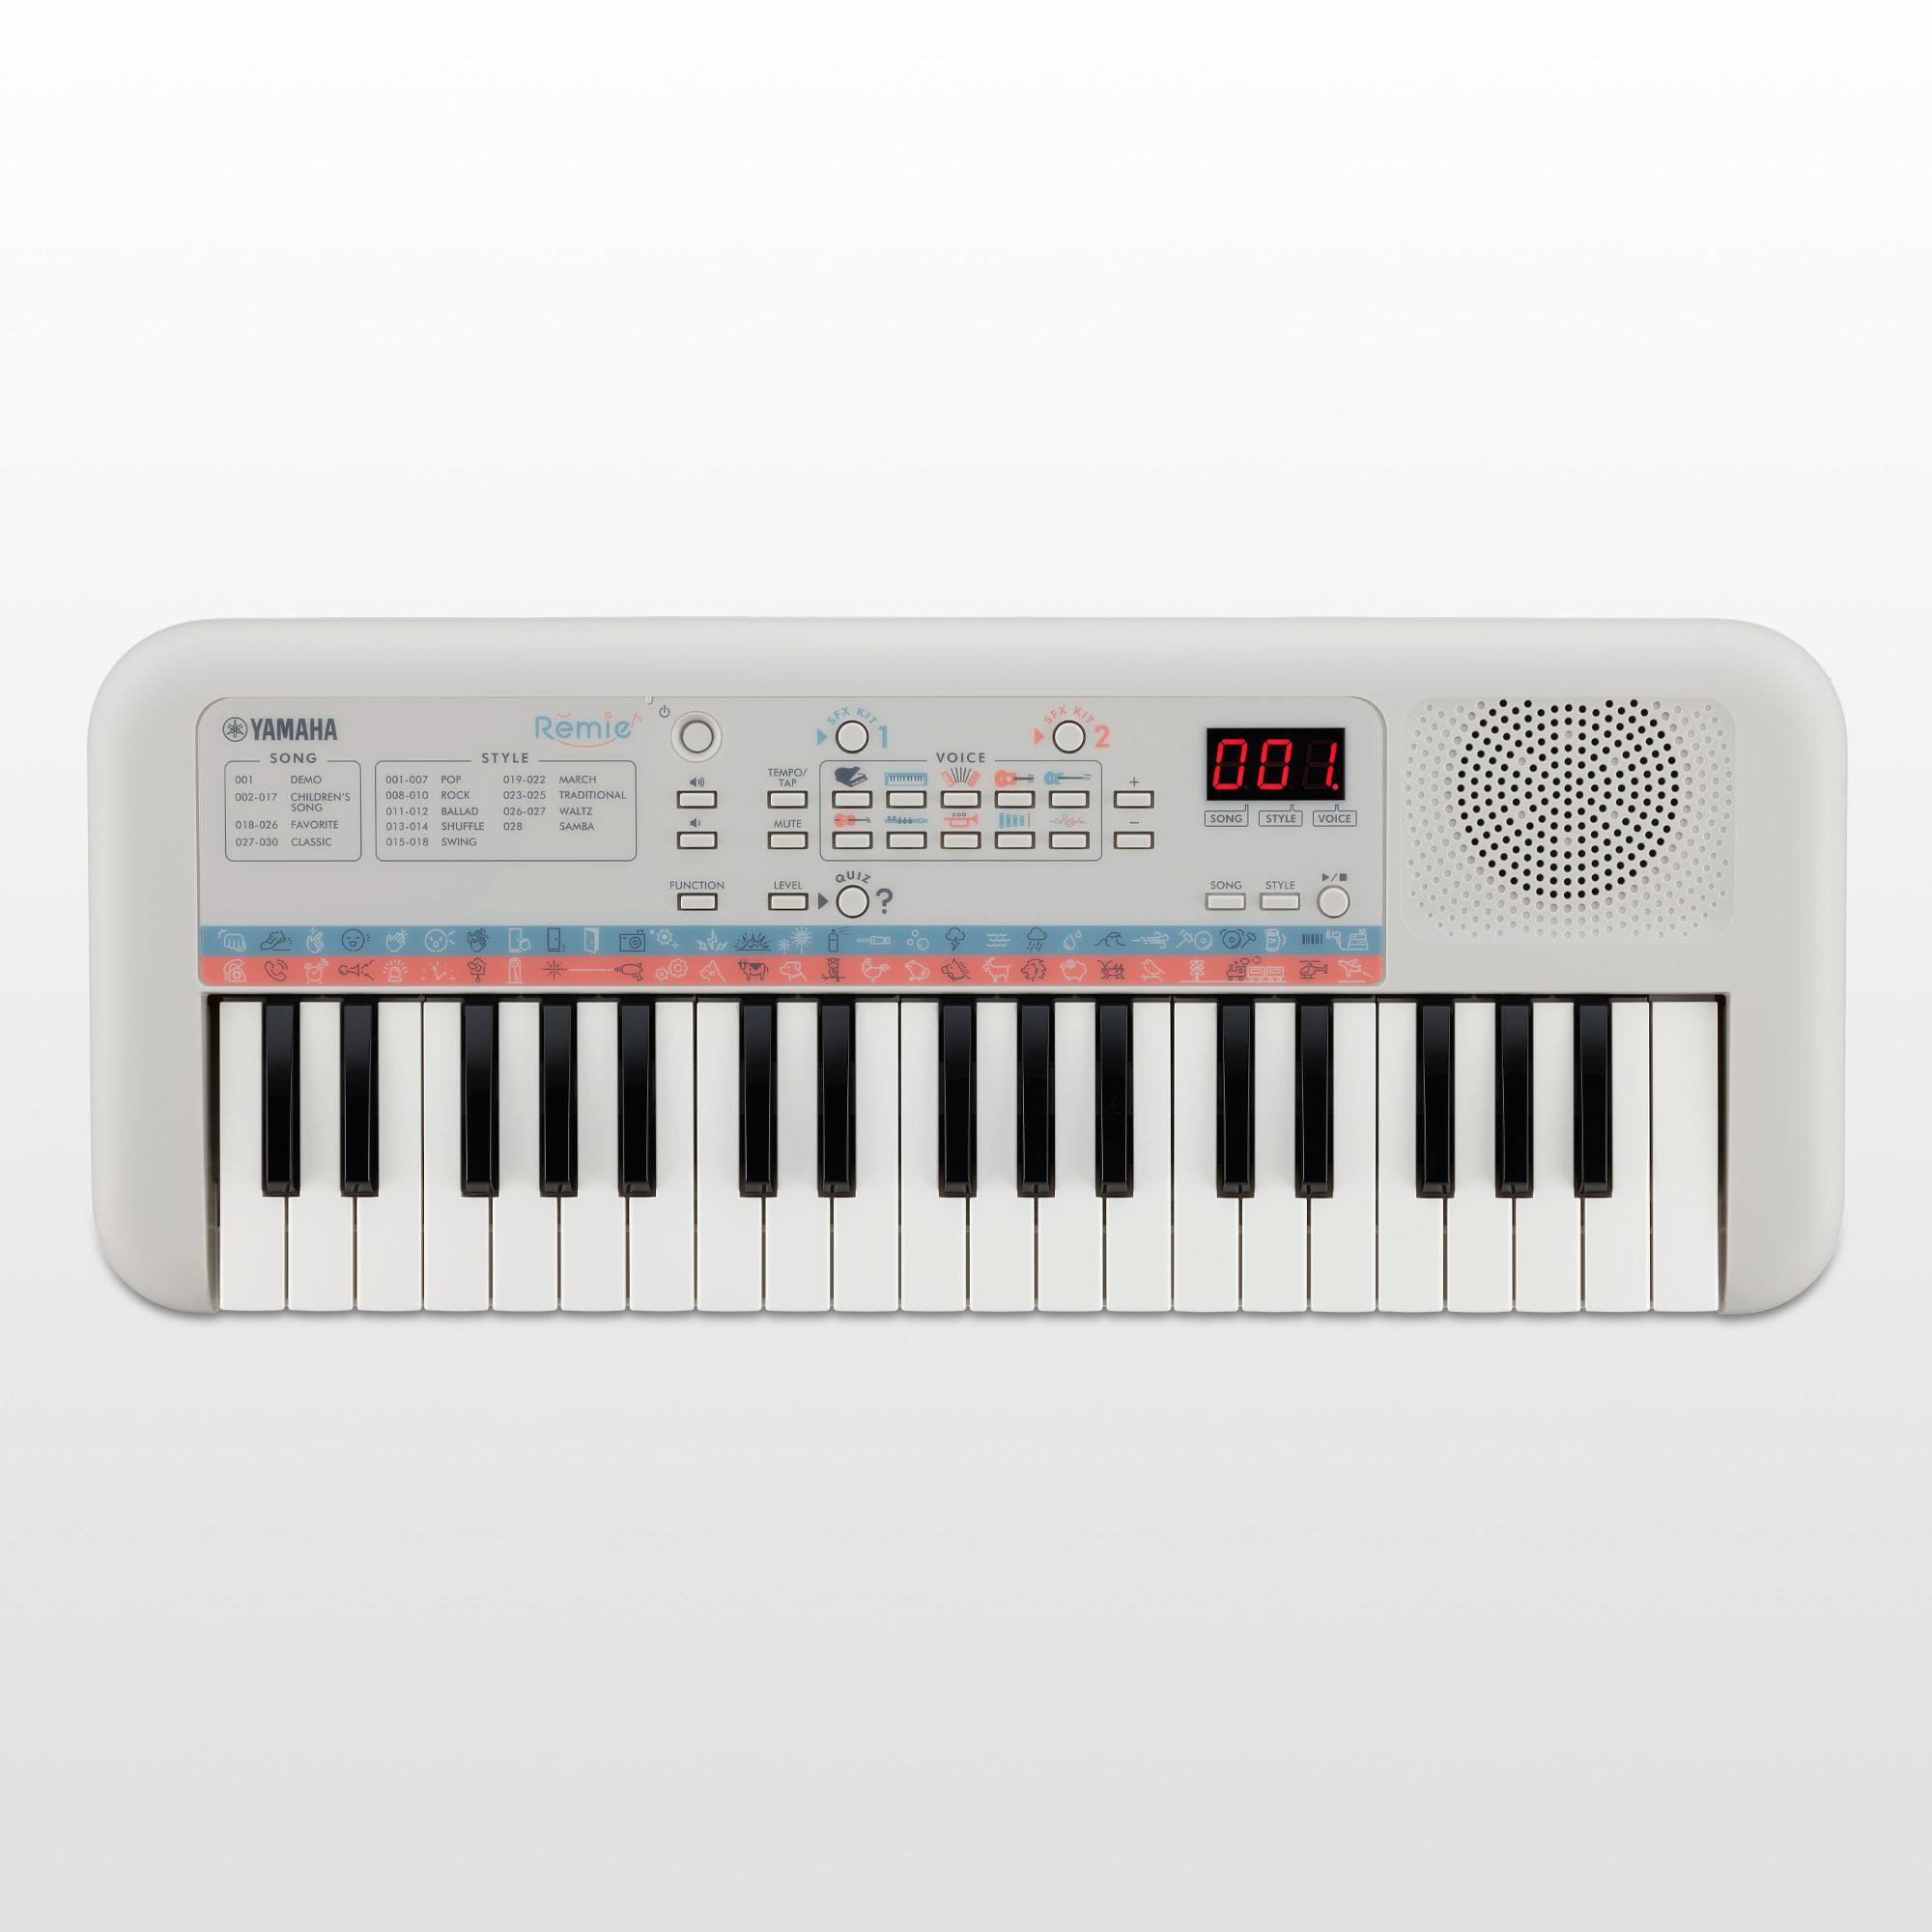 Remie PSS-E30 - Accessories - Portable Keyboards - Keyboard